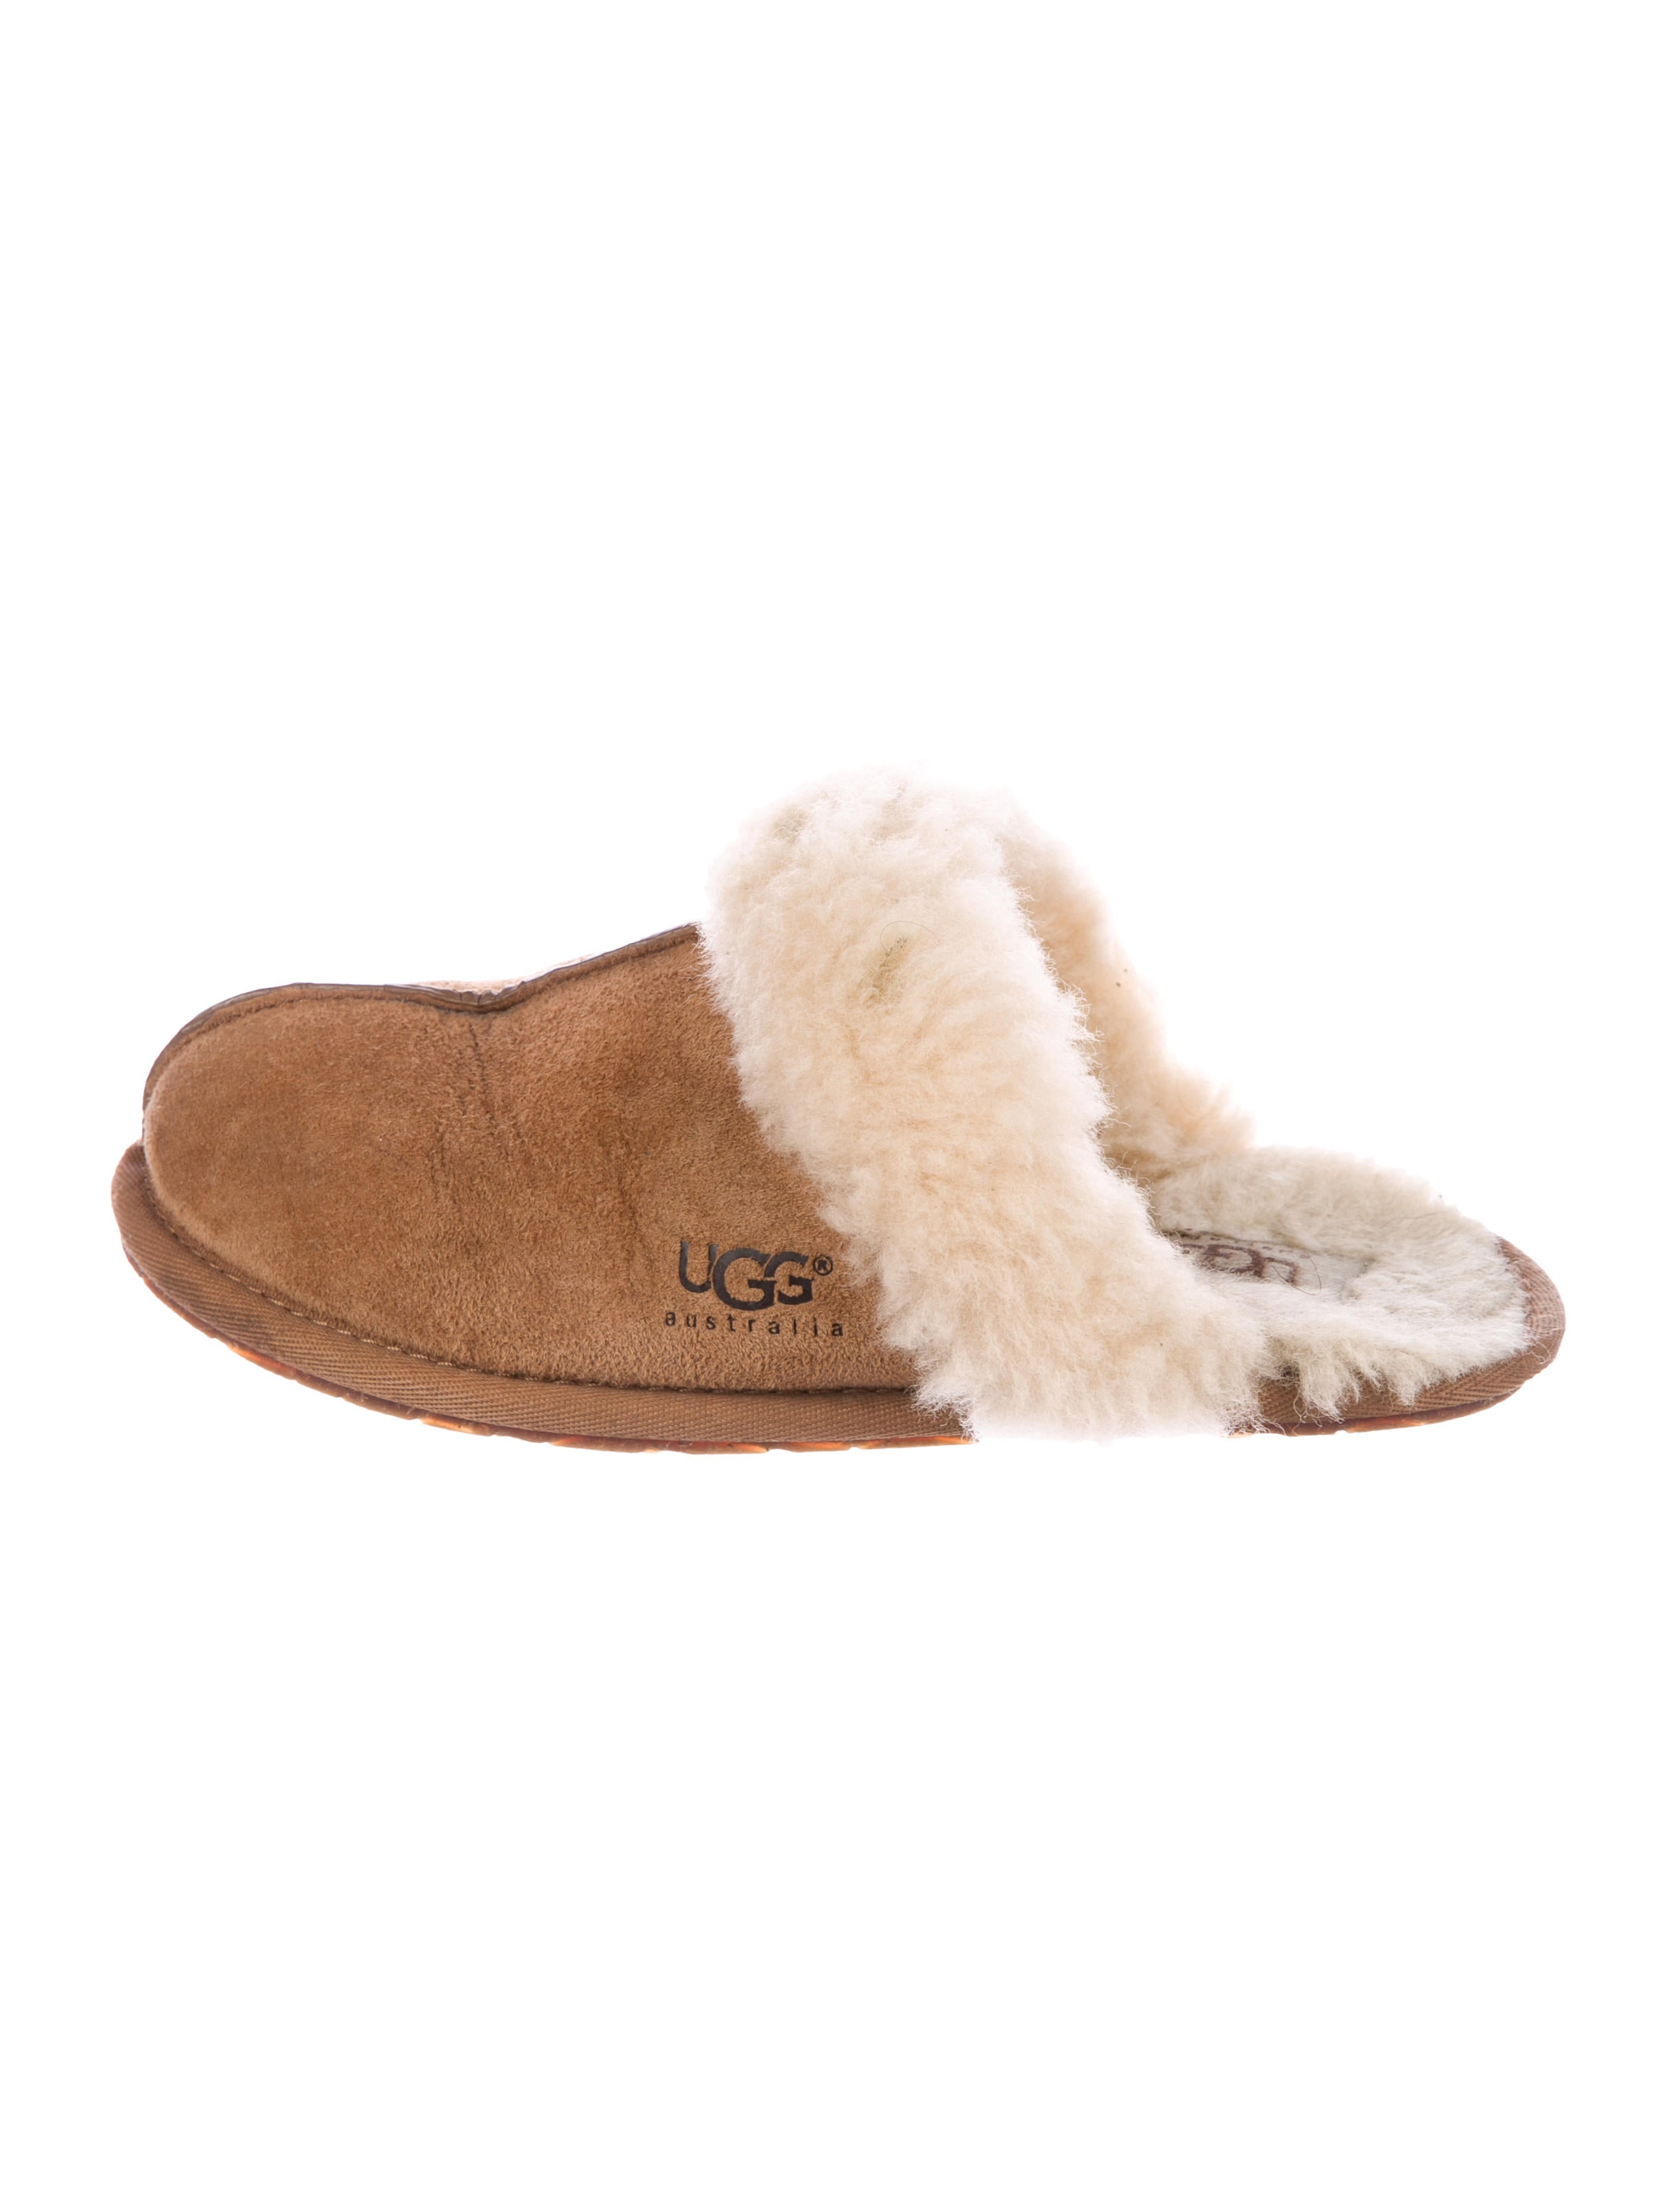 UGG Australia Suede Shearling-Trimmed Slippers cheap sale best discount buy clearance low cost Fe5W2Bzpys